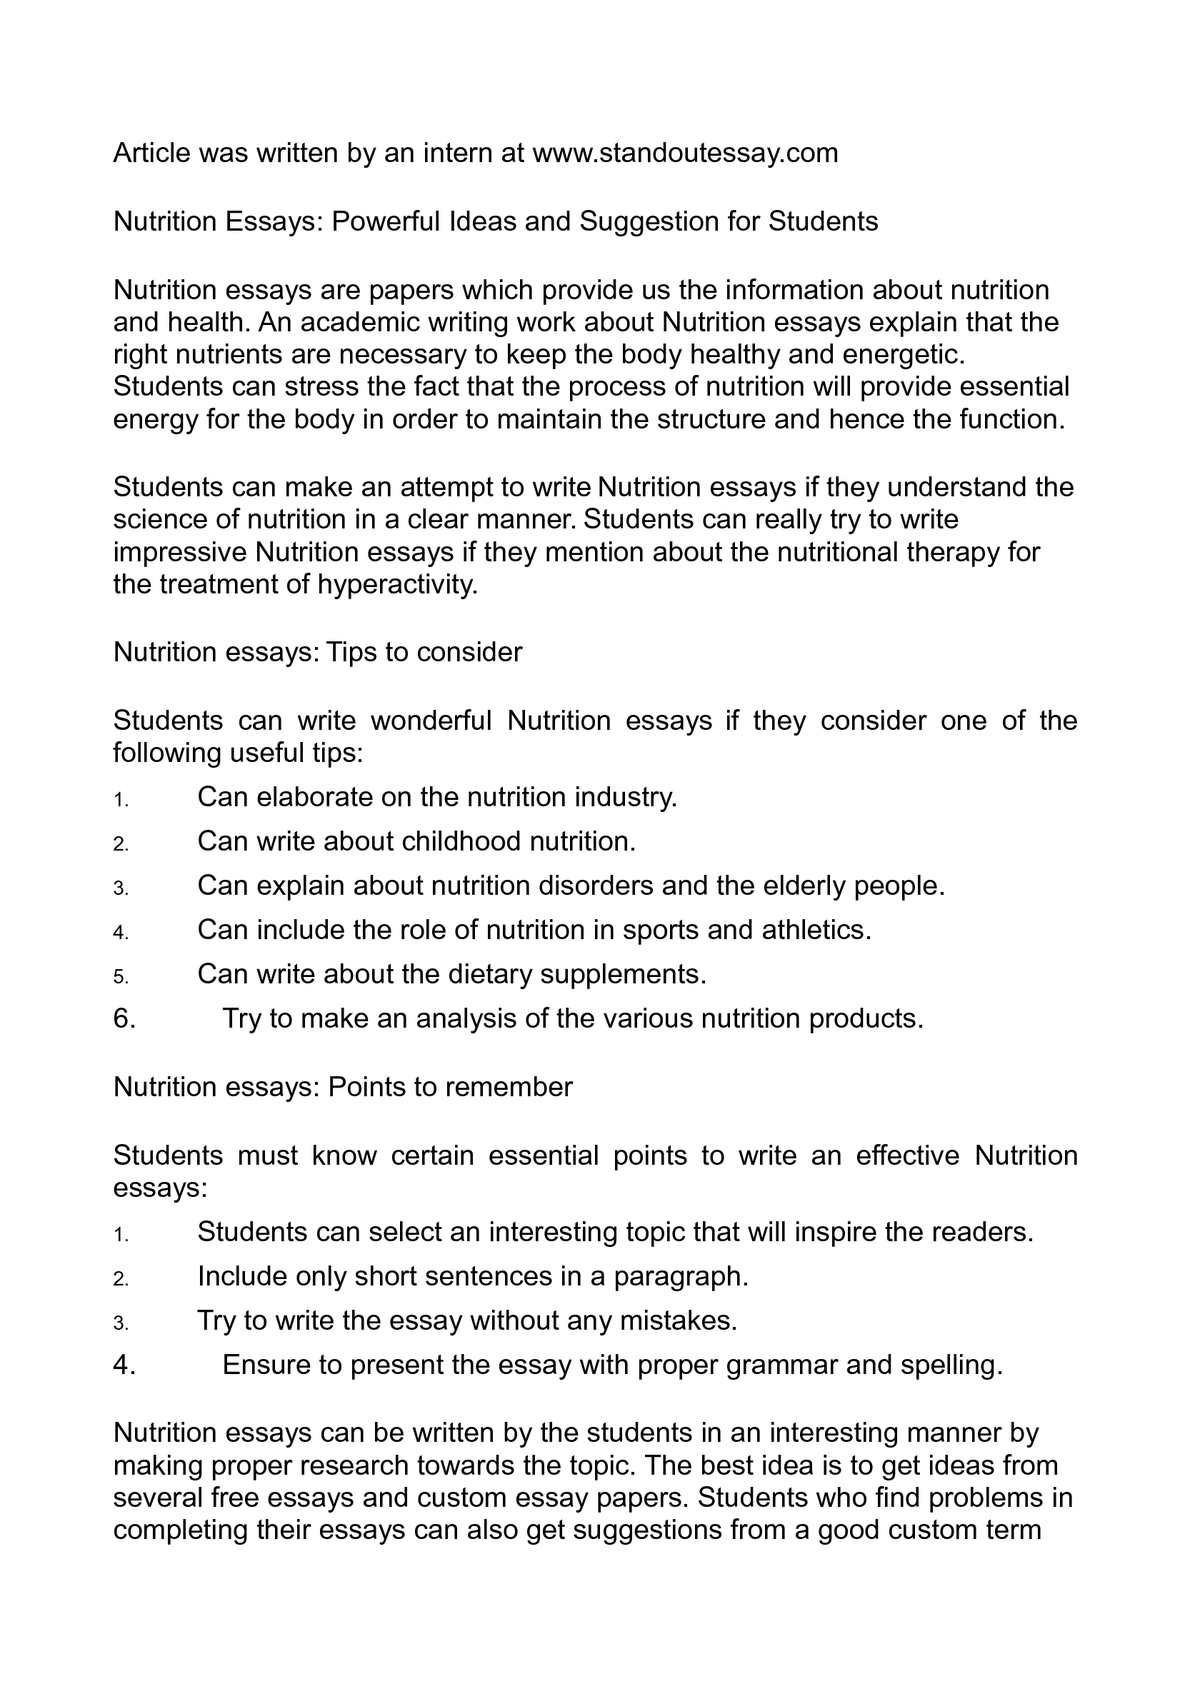 Terrorism Essay In English  Health Issues Essay also Thesis For Essay Calamo  Nutrition Essays Powerful Ideas And Suggestion For Students Business Format Essay